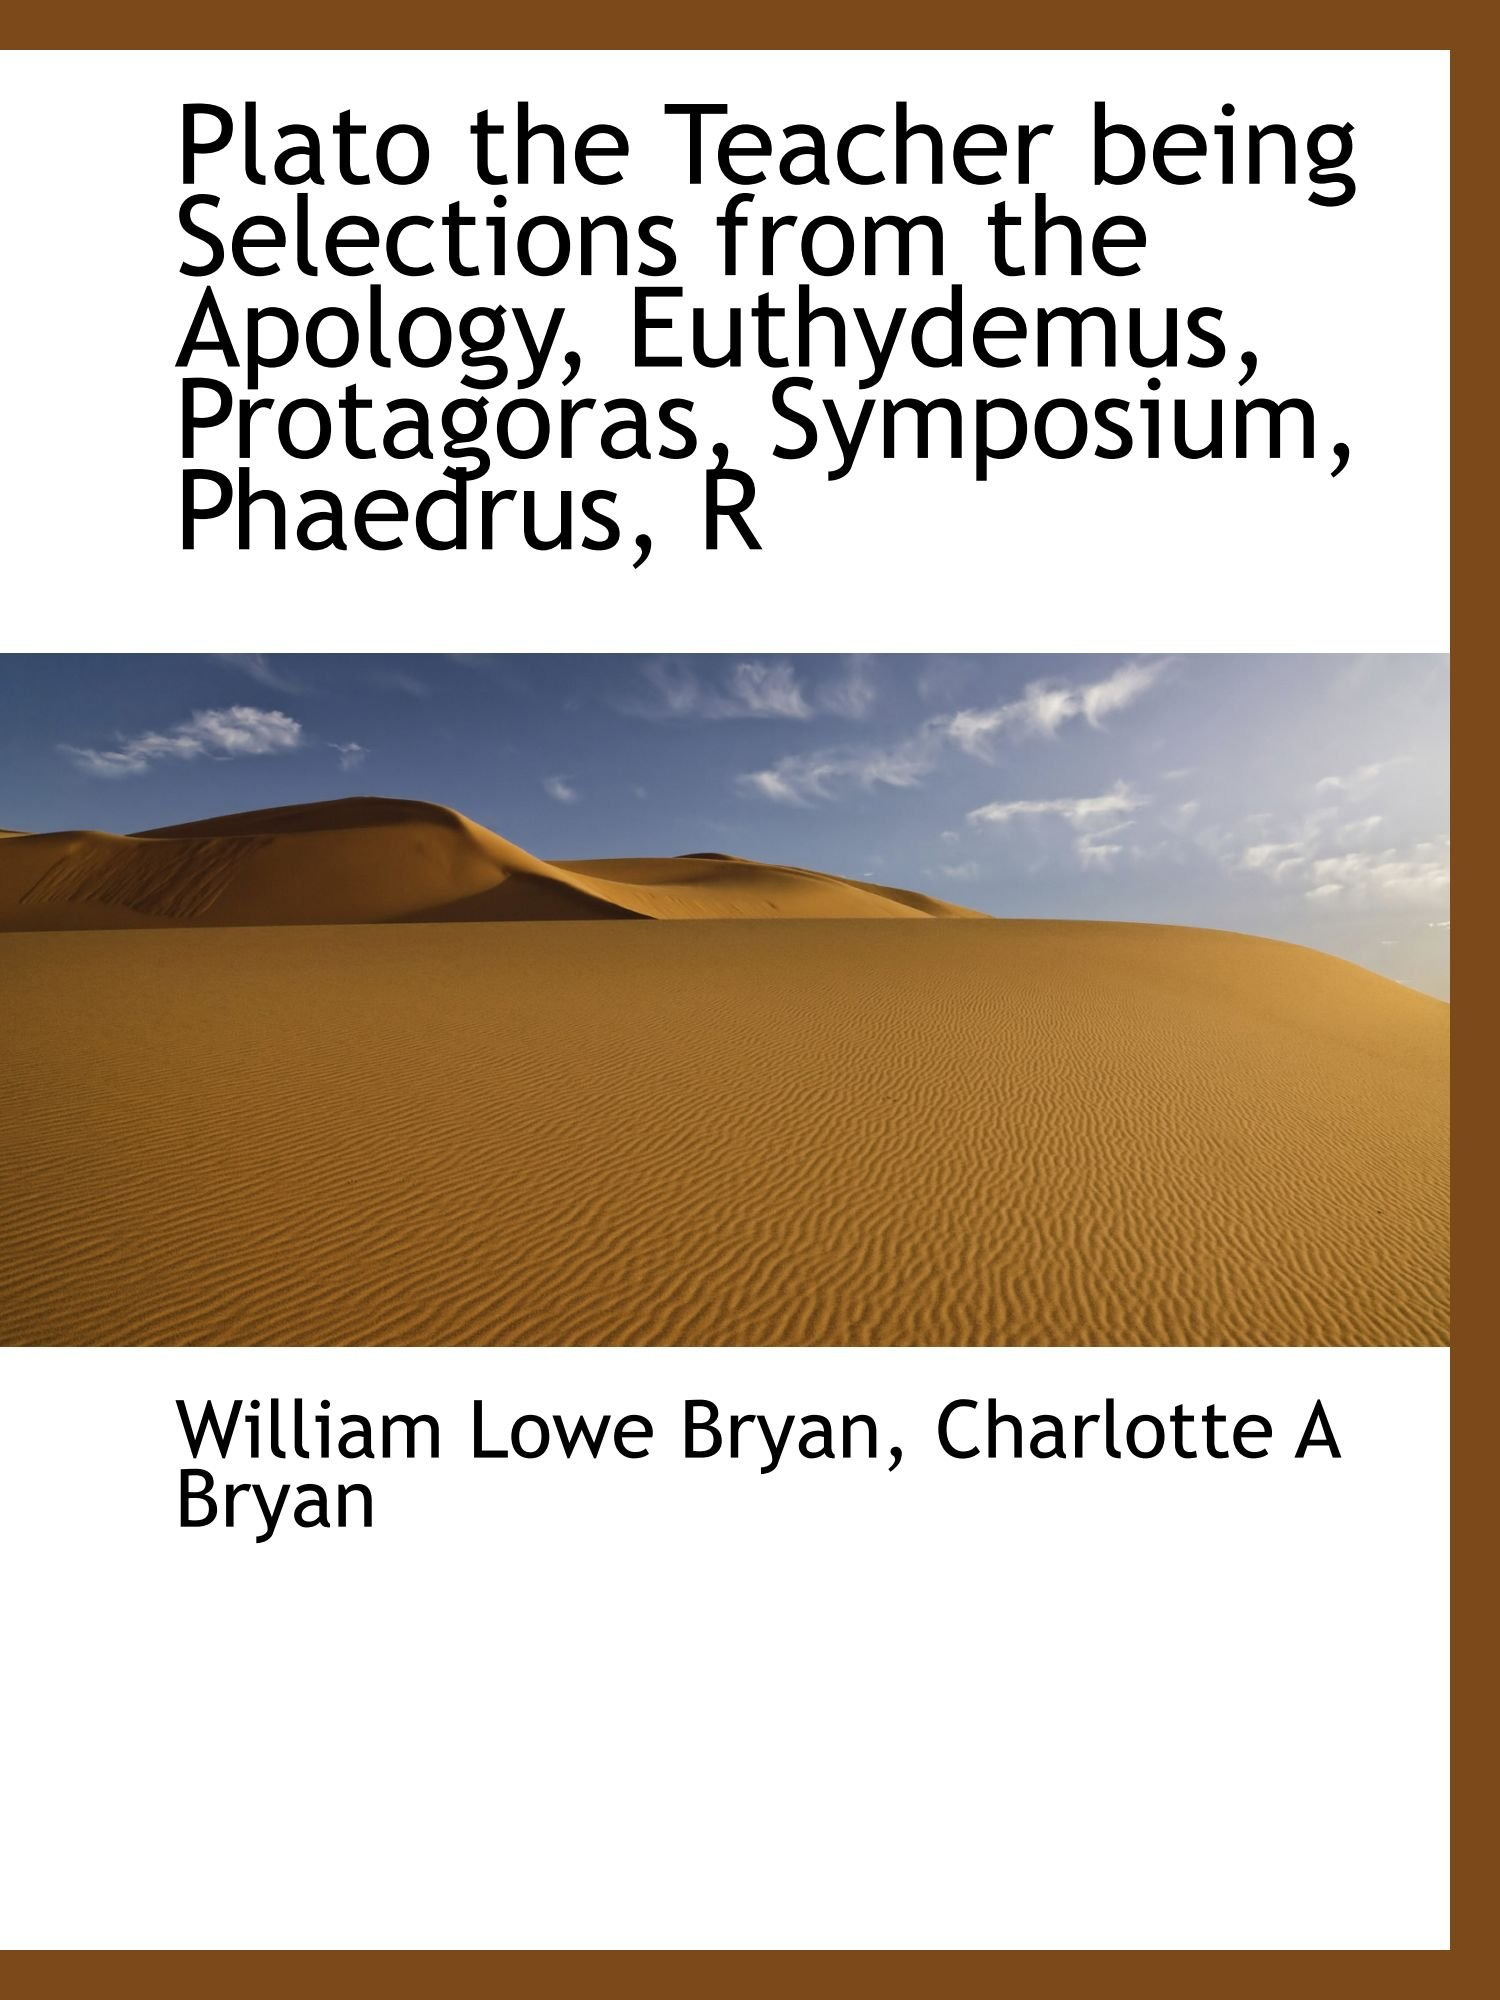 Download Plato the Teacher being Selections from the Apology, Euthydemus, Protagoras, Symposium, Phaedrus, R pdf